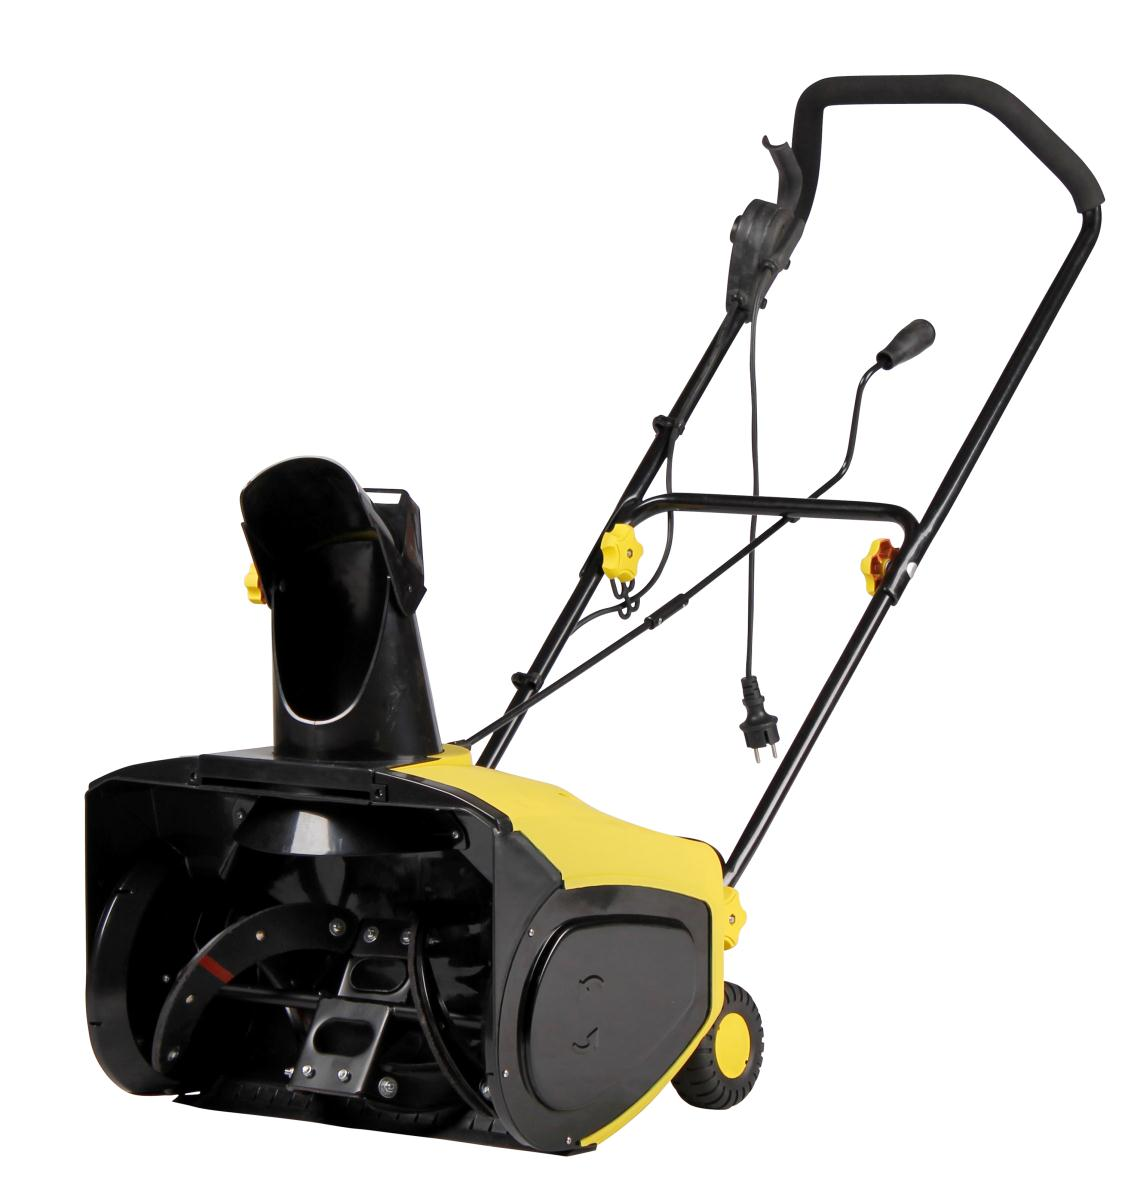 DK GB Manual Manual SNOW BUSTER 390 Texas A/S - Knullen 22 - DK-5260